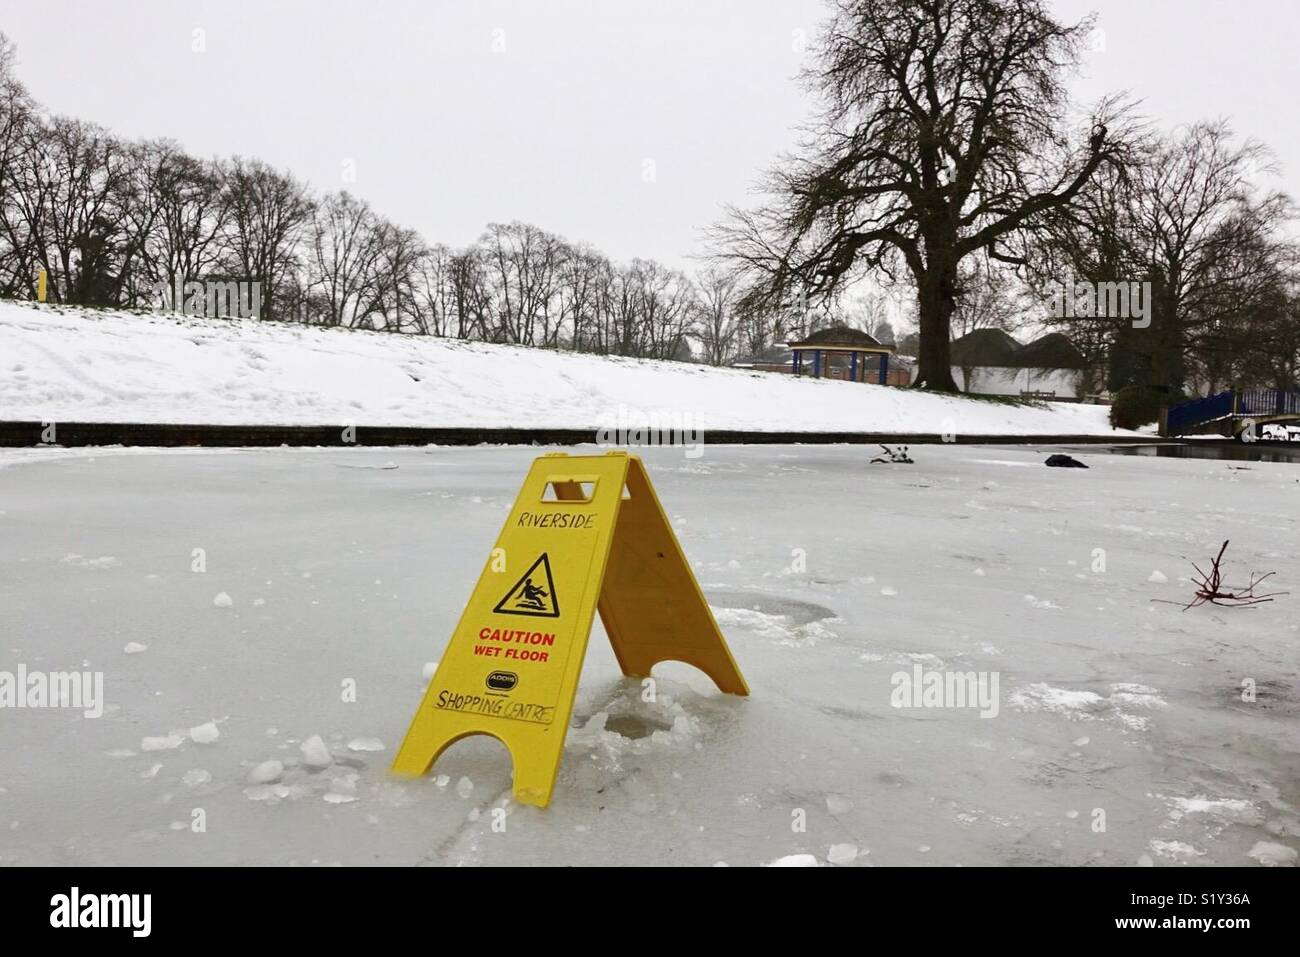 Caution slippery surface - Stock Image